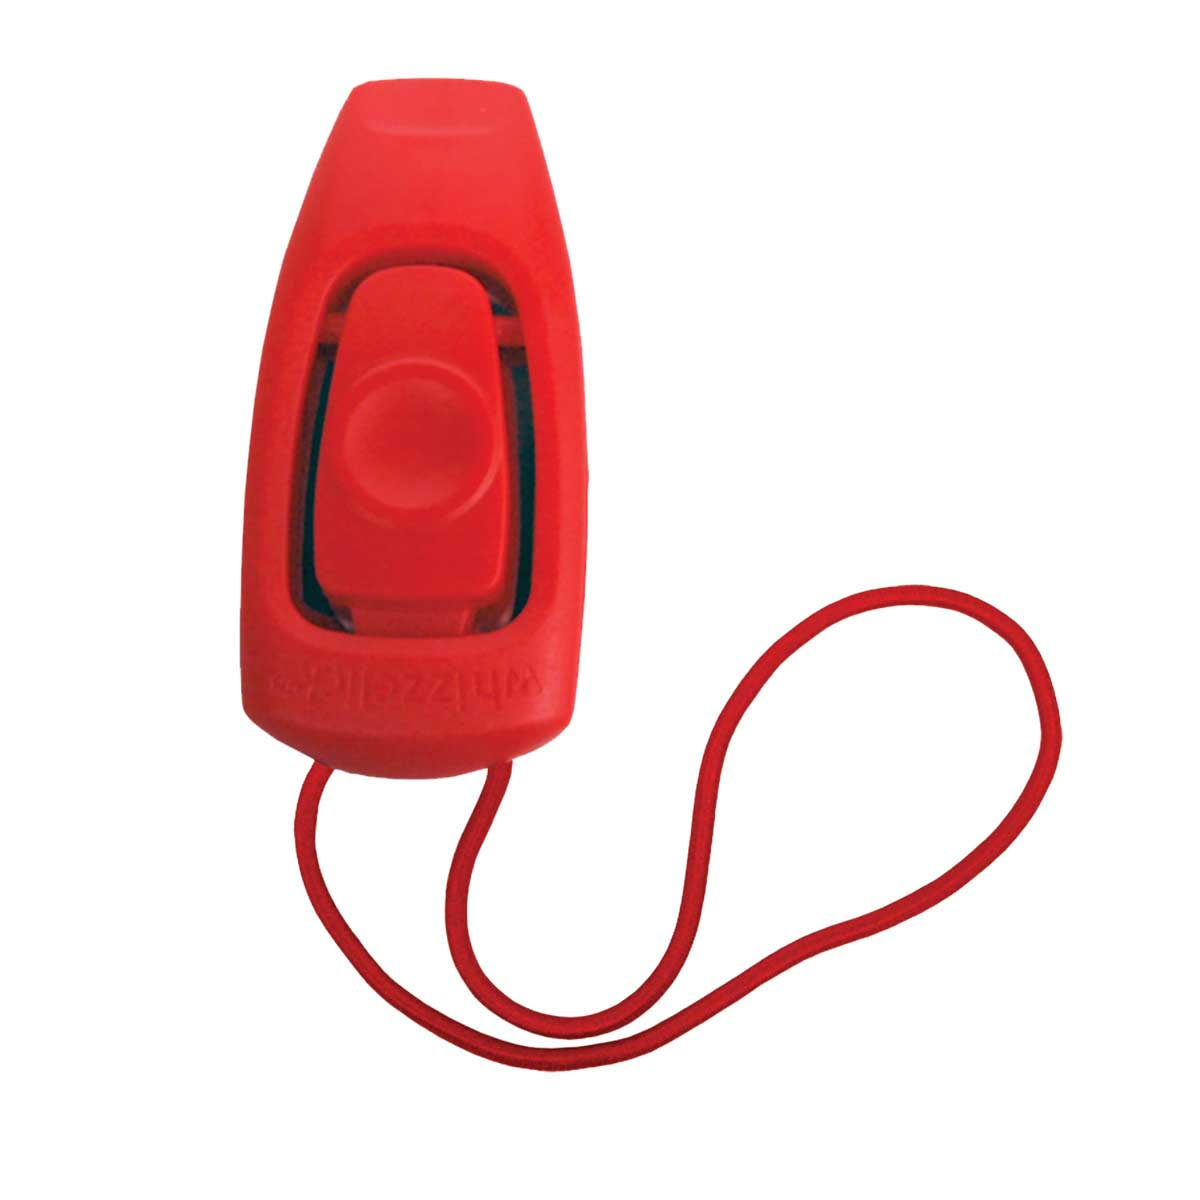 Clix Whizzclick Training Aid for Dogs